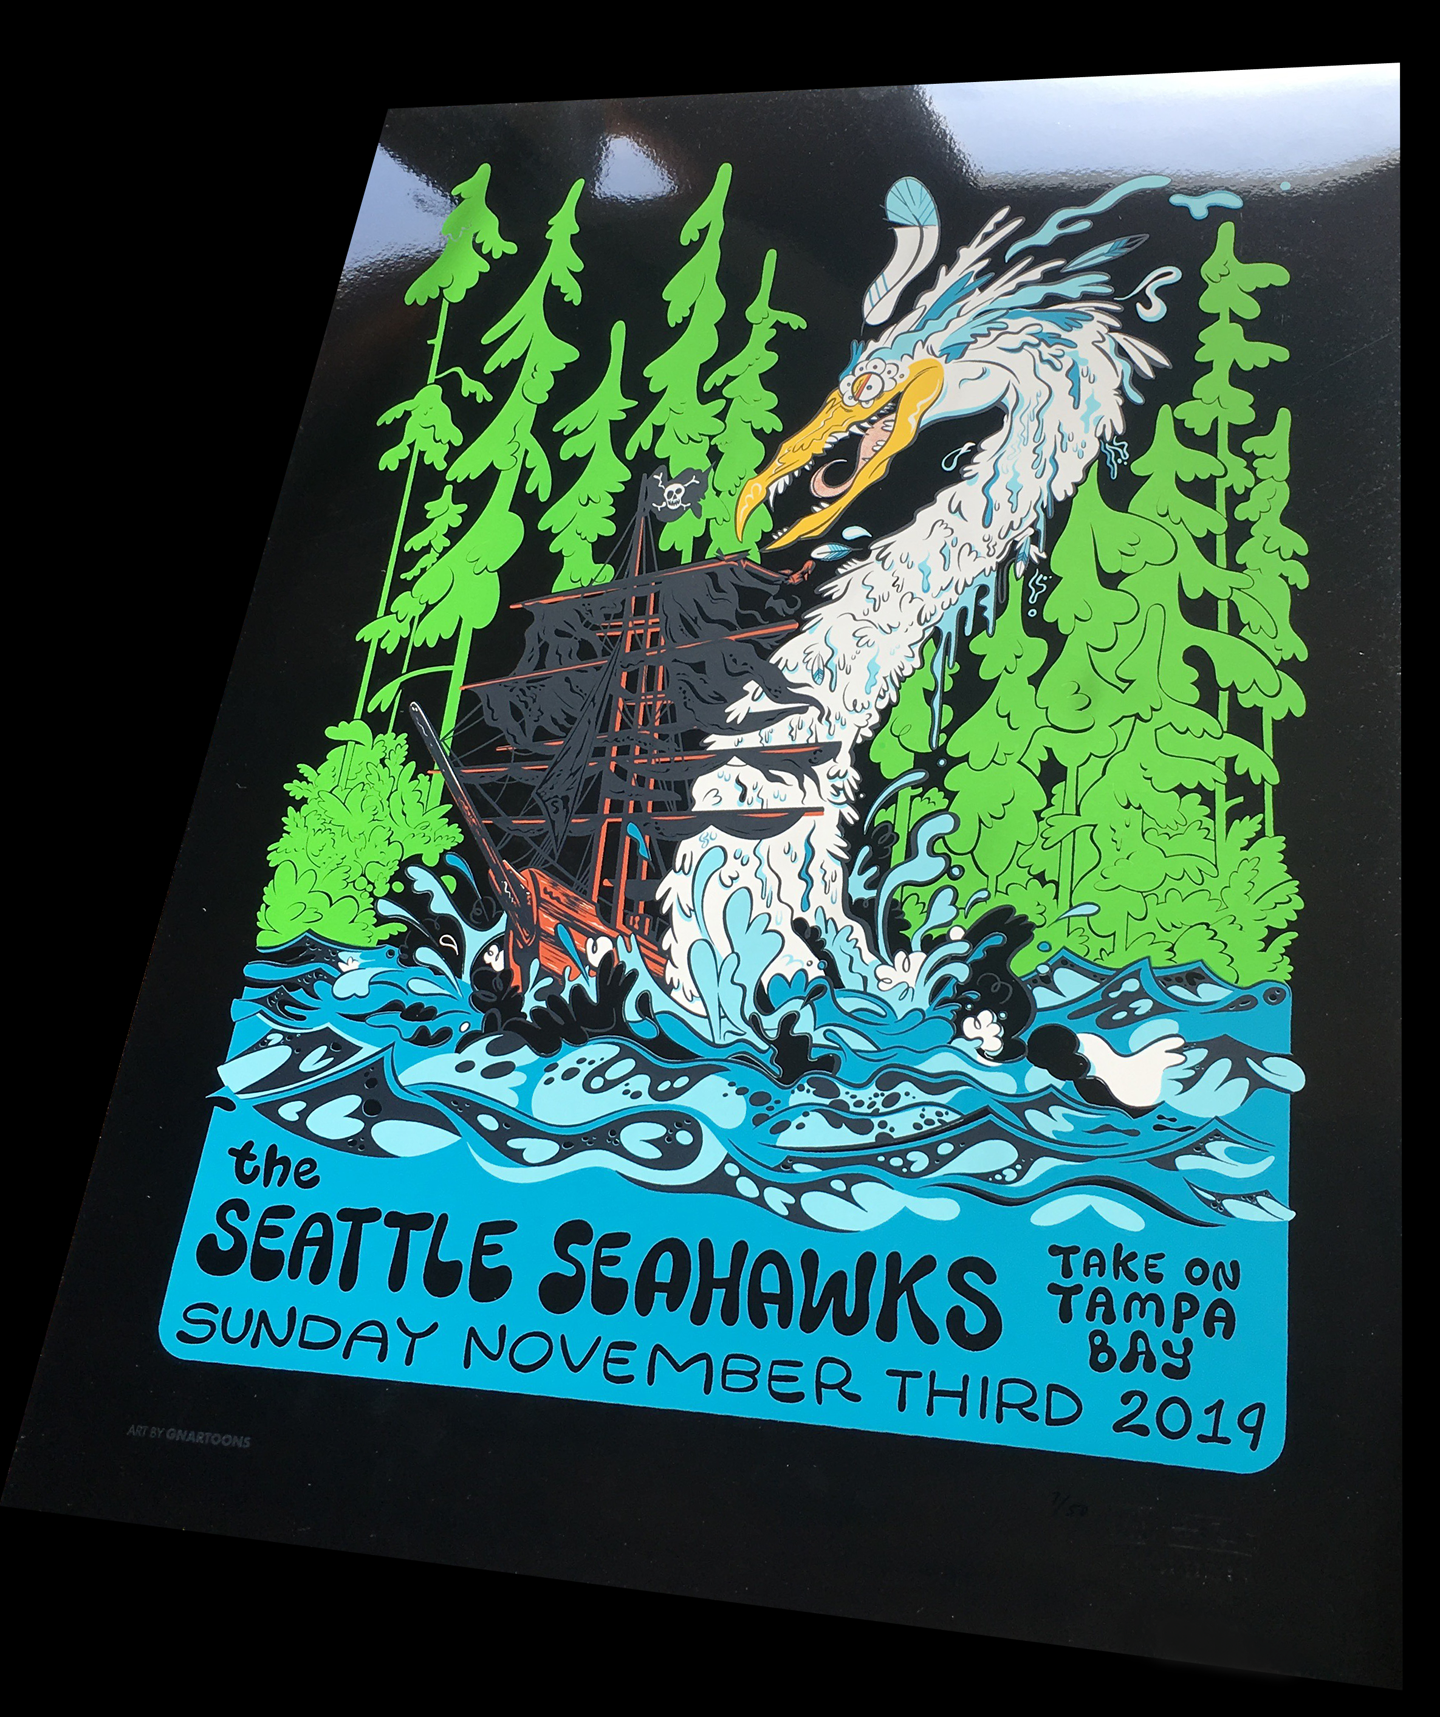 Seattle Seahawks Gameday Print Mirror Foil Gnartoons By James The Stanton Online Store Powered By Storenvy